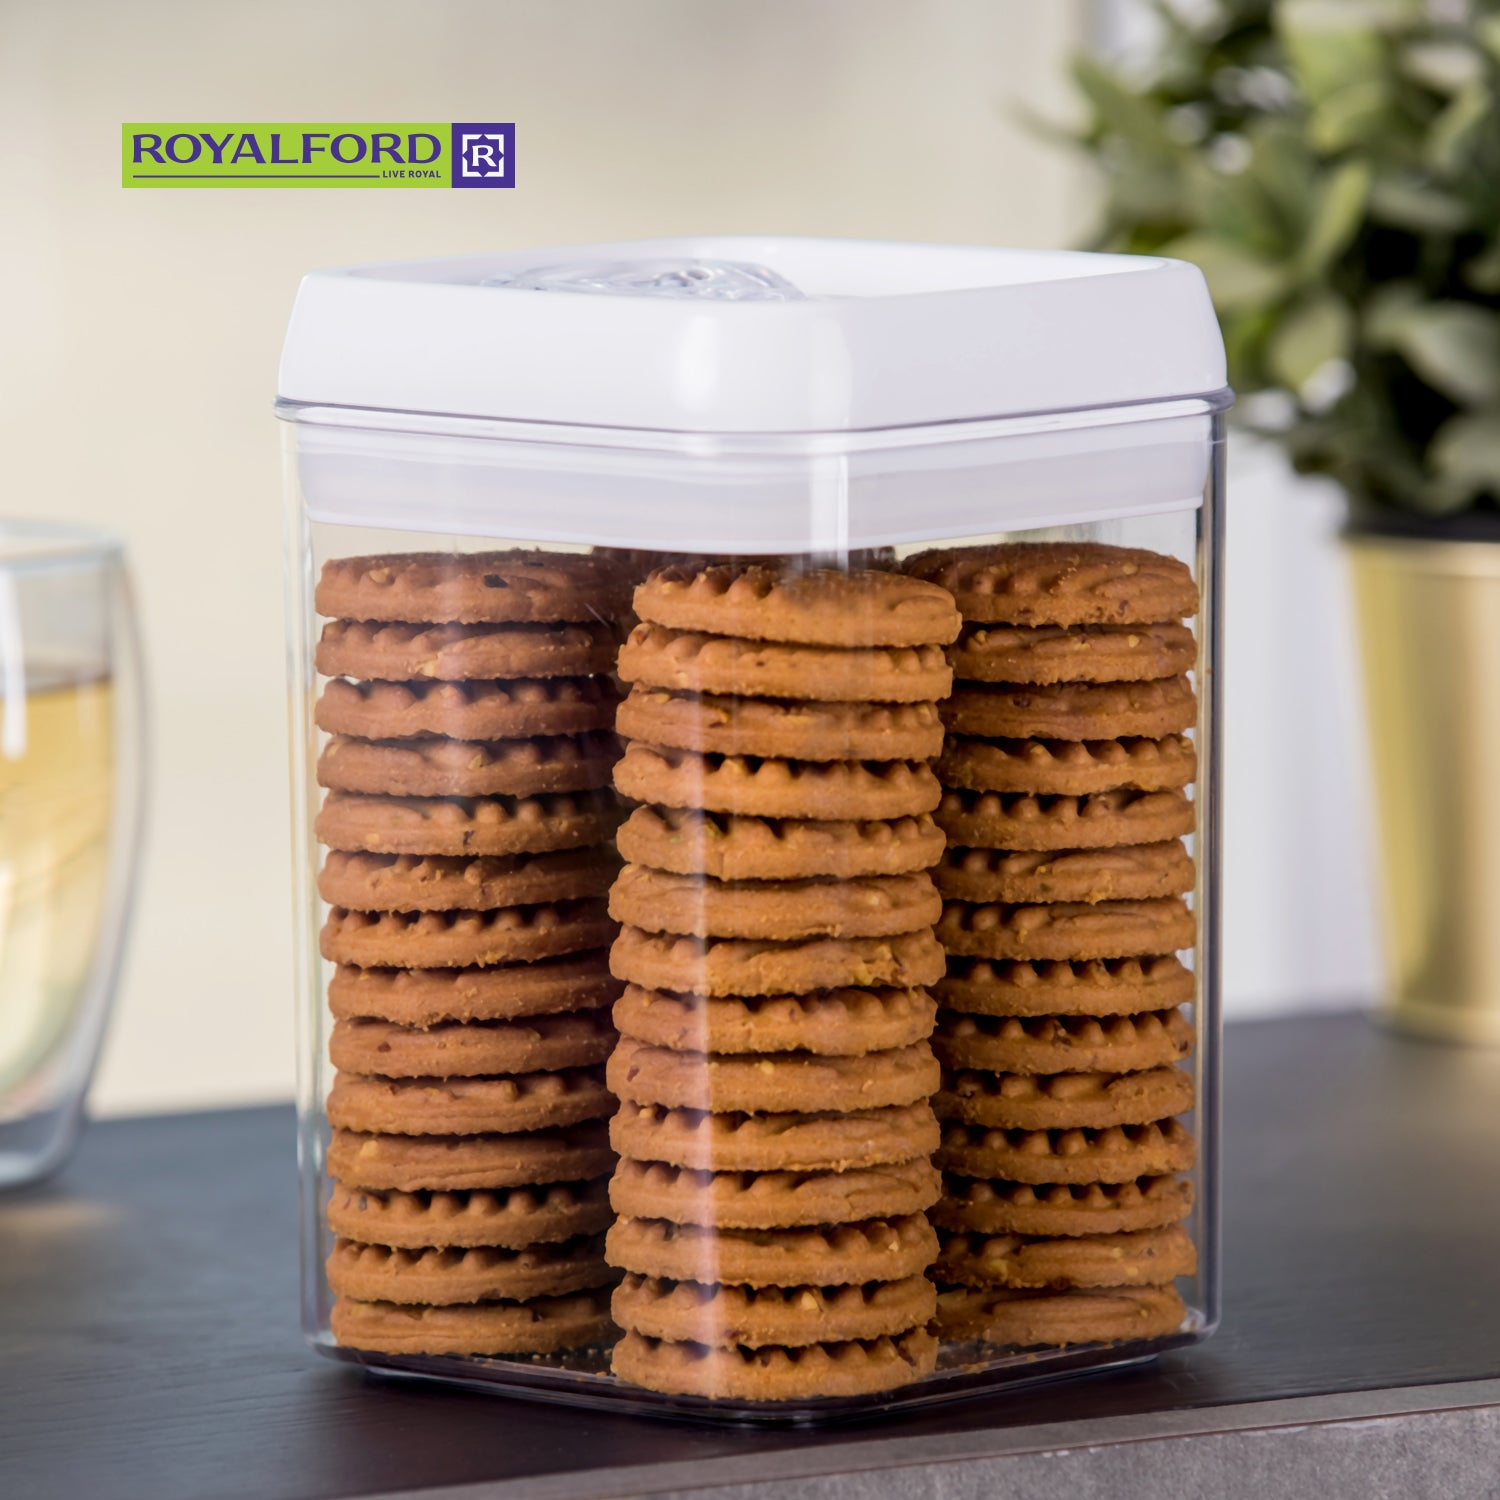 Royalford RF7697 Pop Square Canister, 1.7L - Stackable Food Storage Container with Airtight lids, Sweet, Snack, Spaghetti & Cereal Dispenser –Durable, Transparent, Mini Pantry Storage Organizers for Kitchen